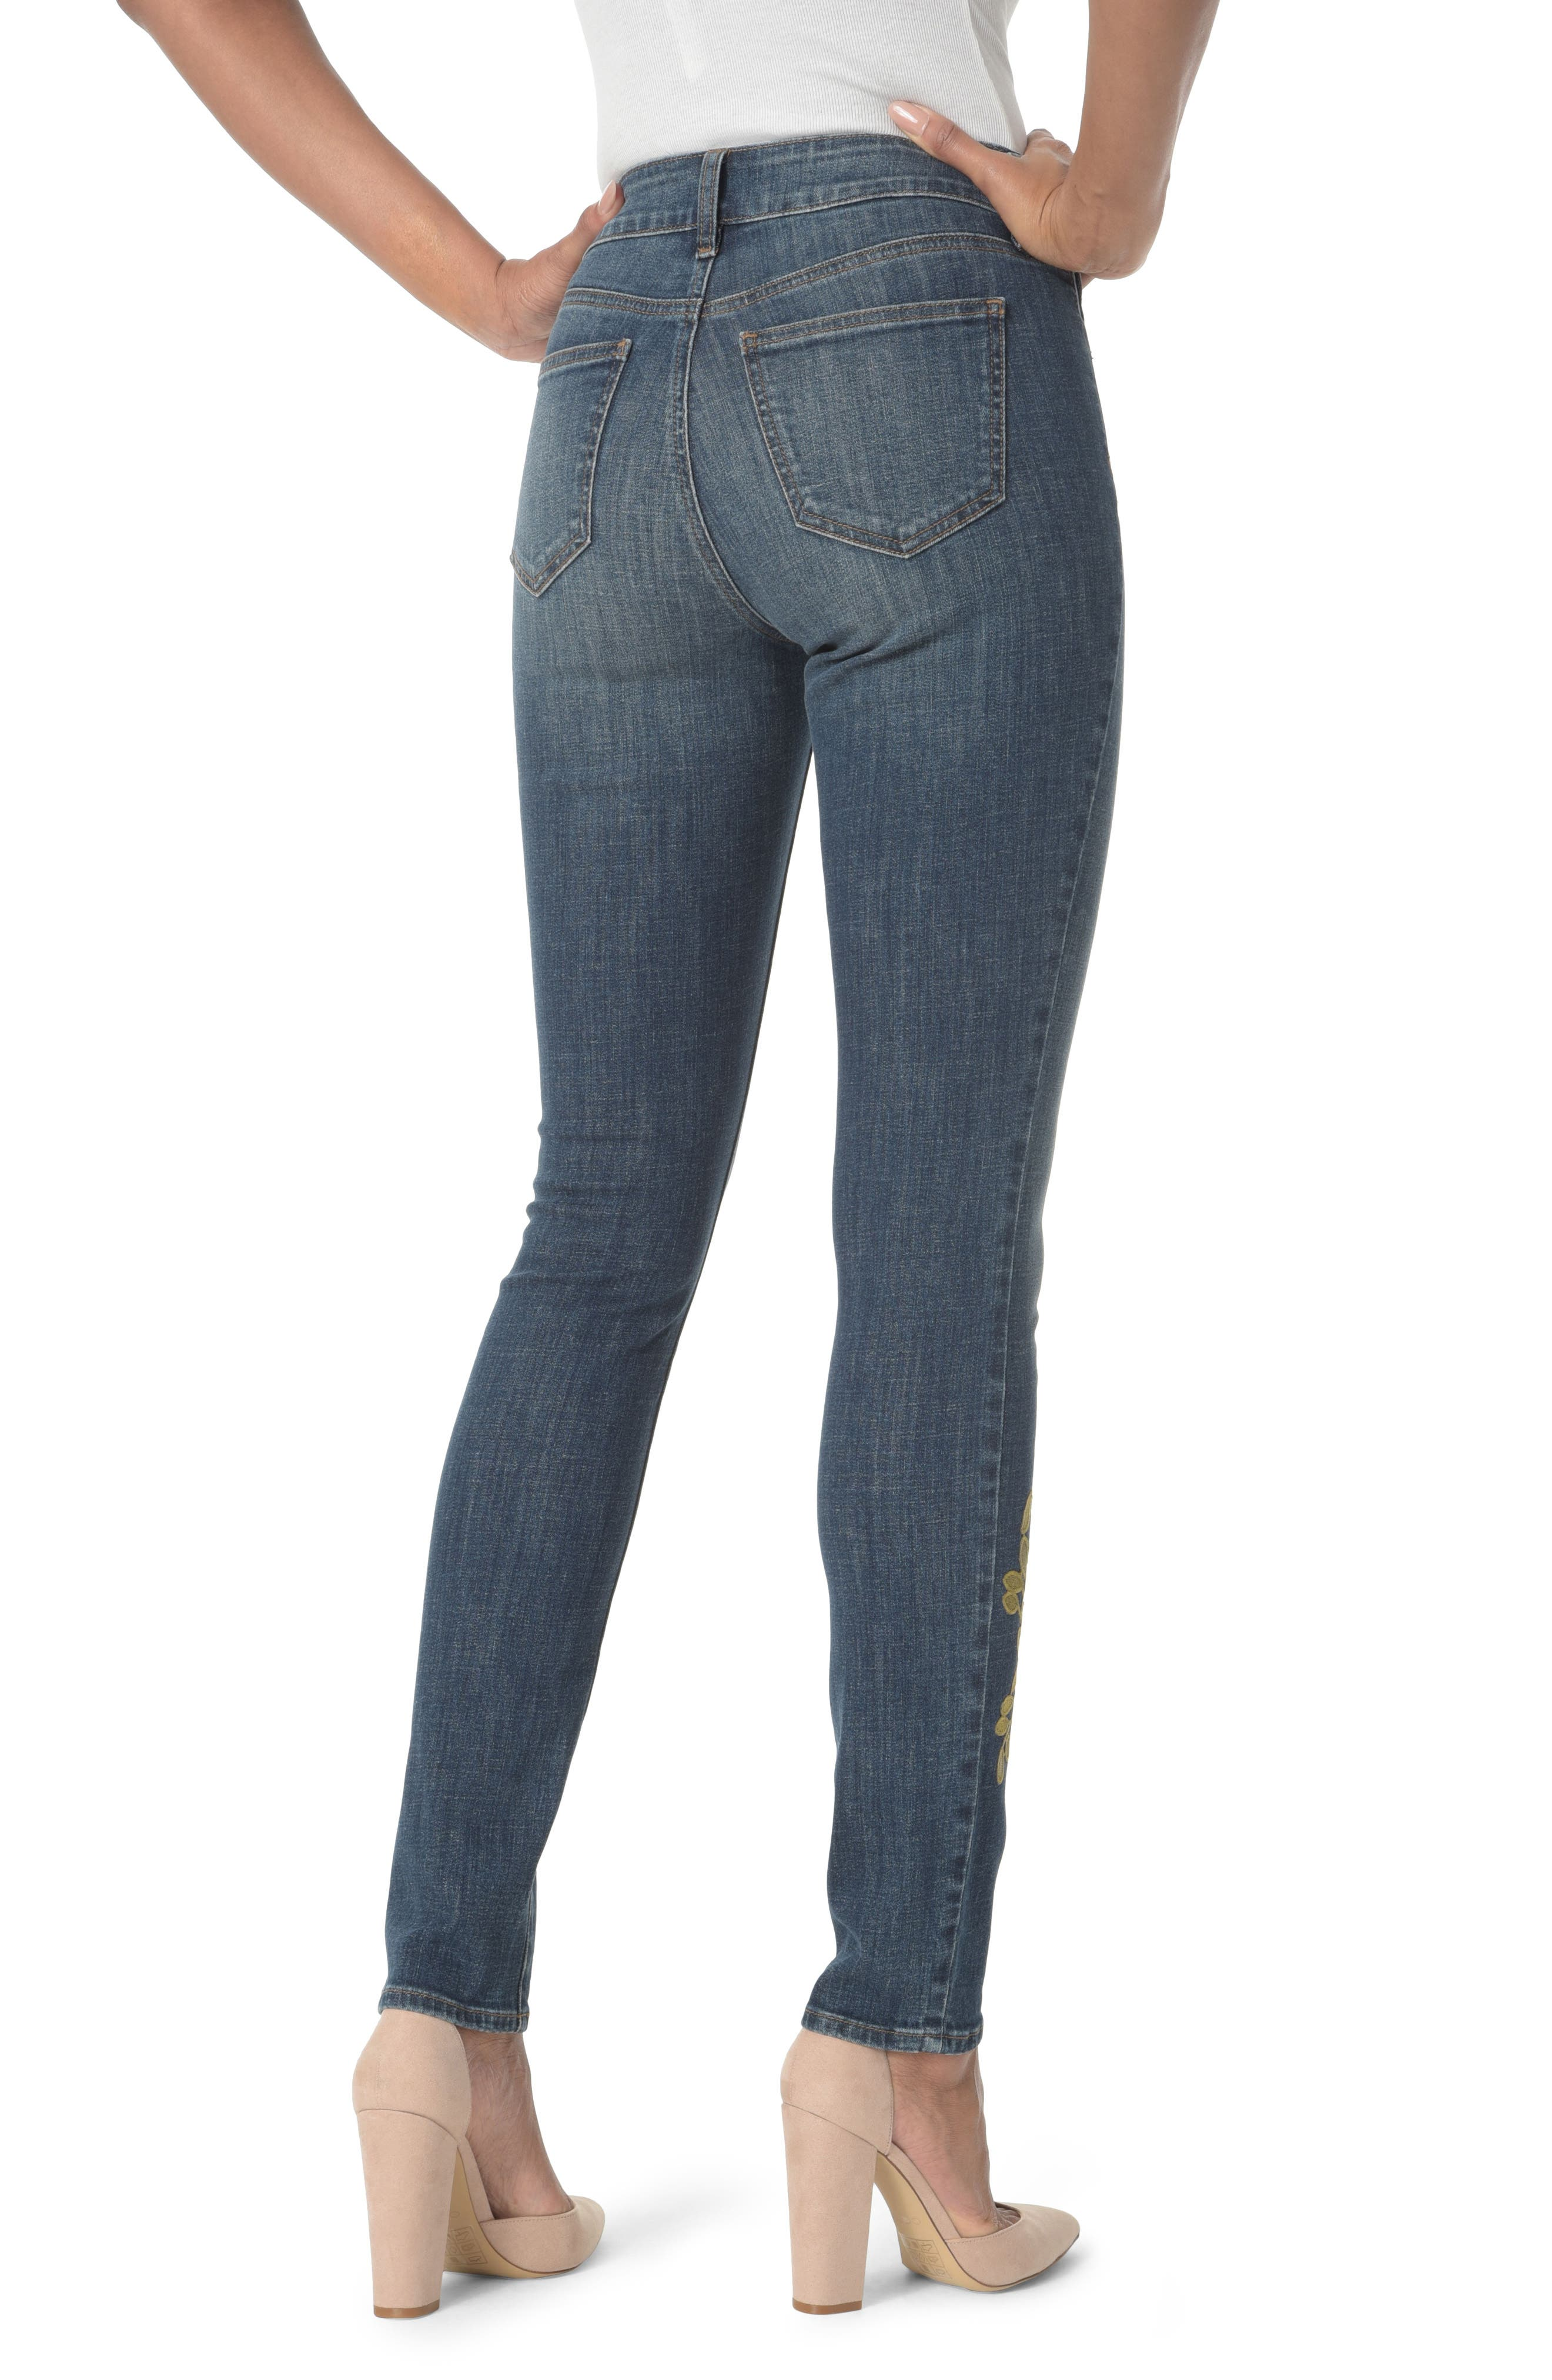 Alina High Waist Stretch Skinny Jeans,                             Alternate thumbnail 2, color,